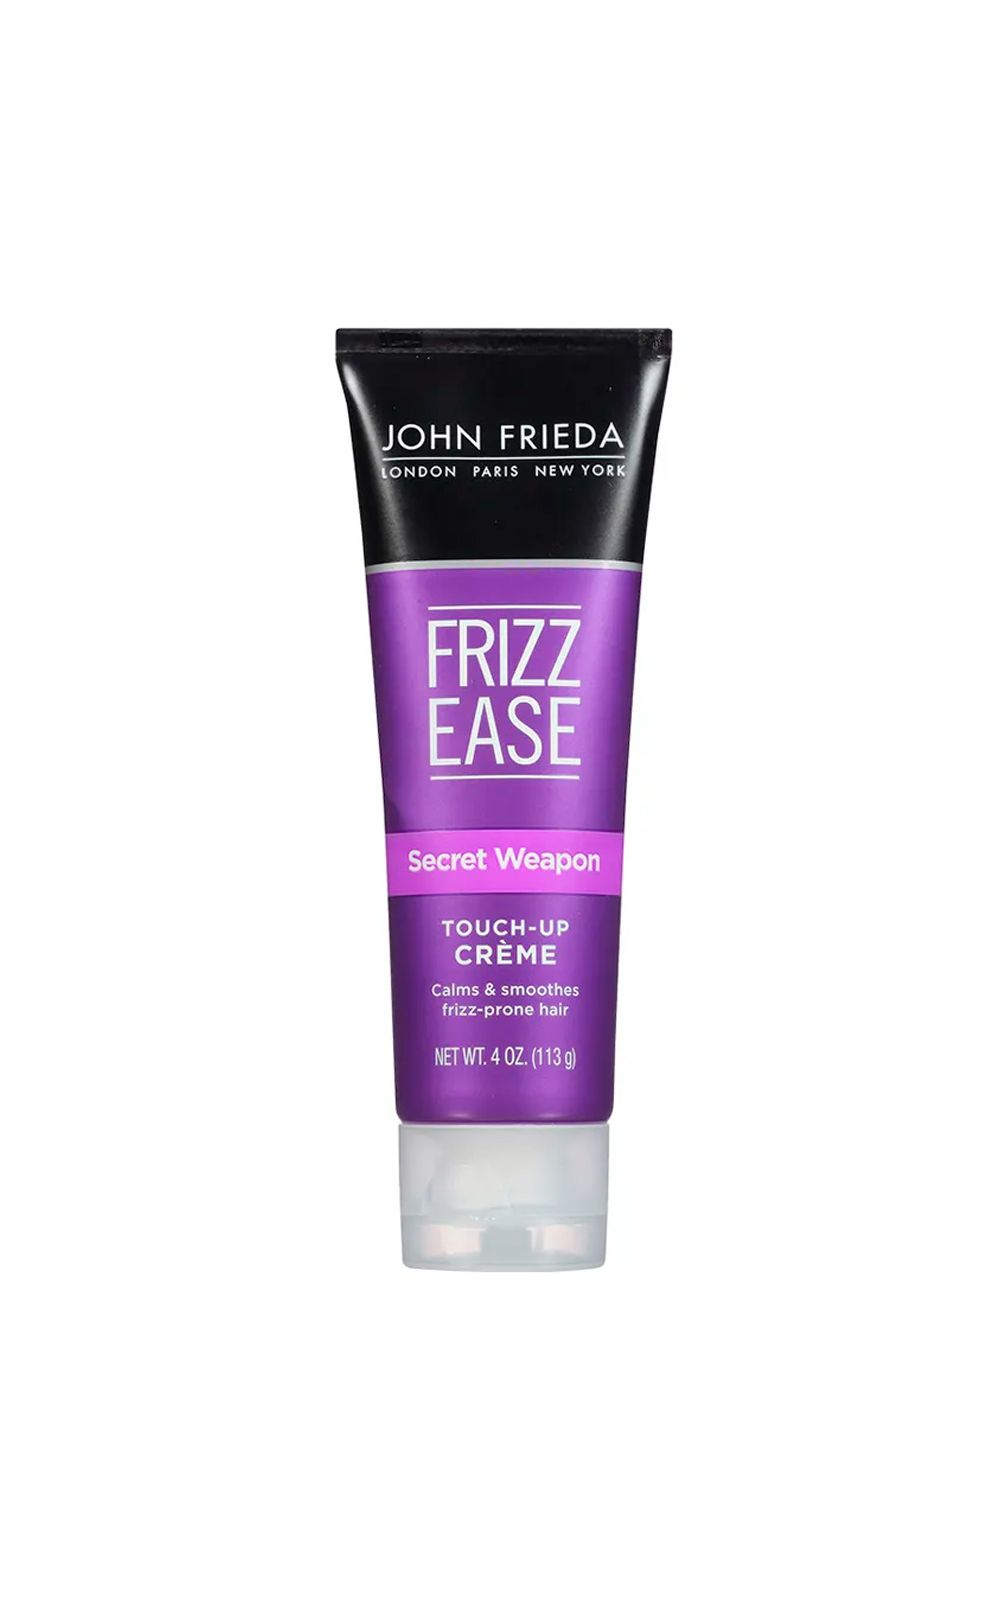 Foto 1 - John Frieda Secret Weapon - Creme para Pentear - 113g